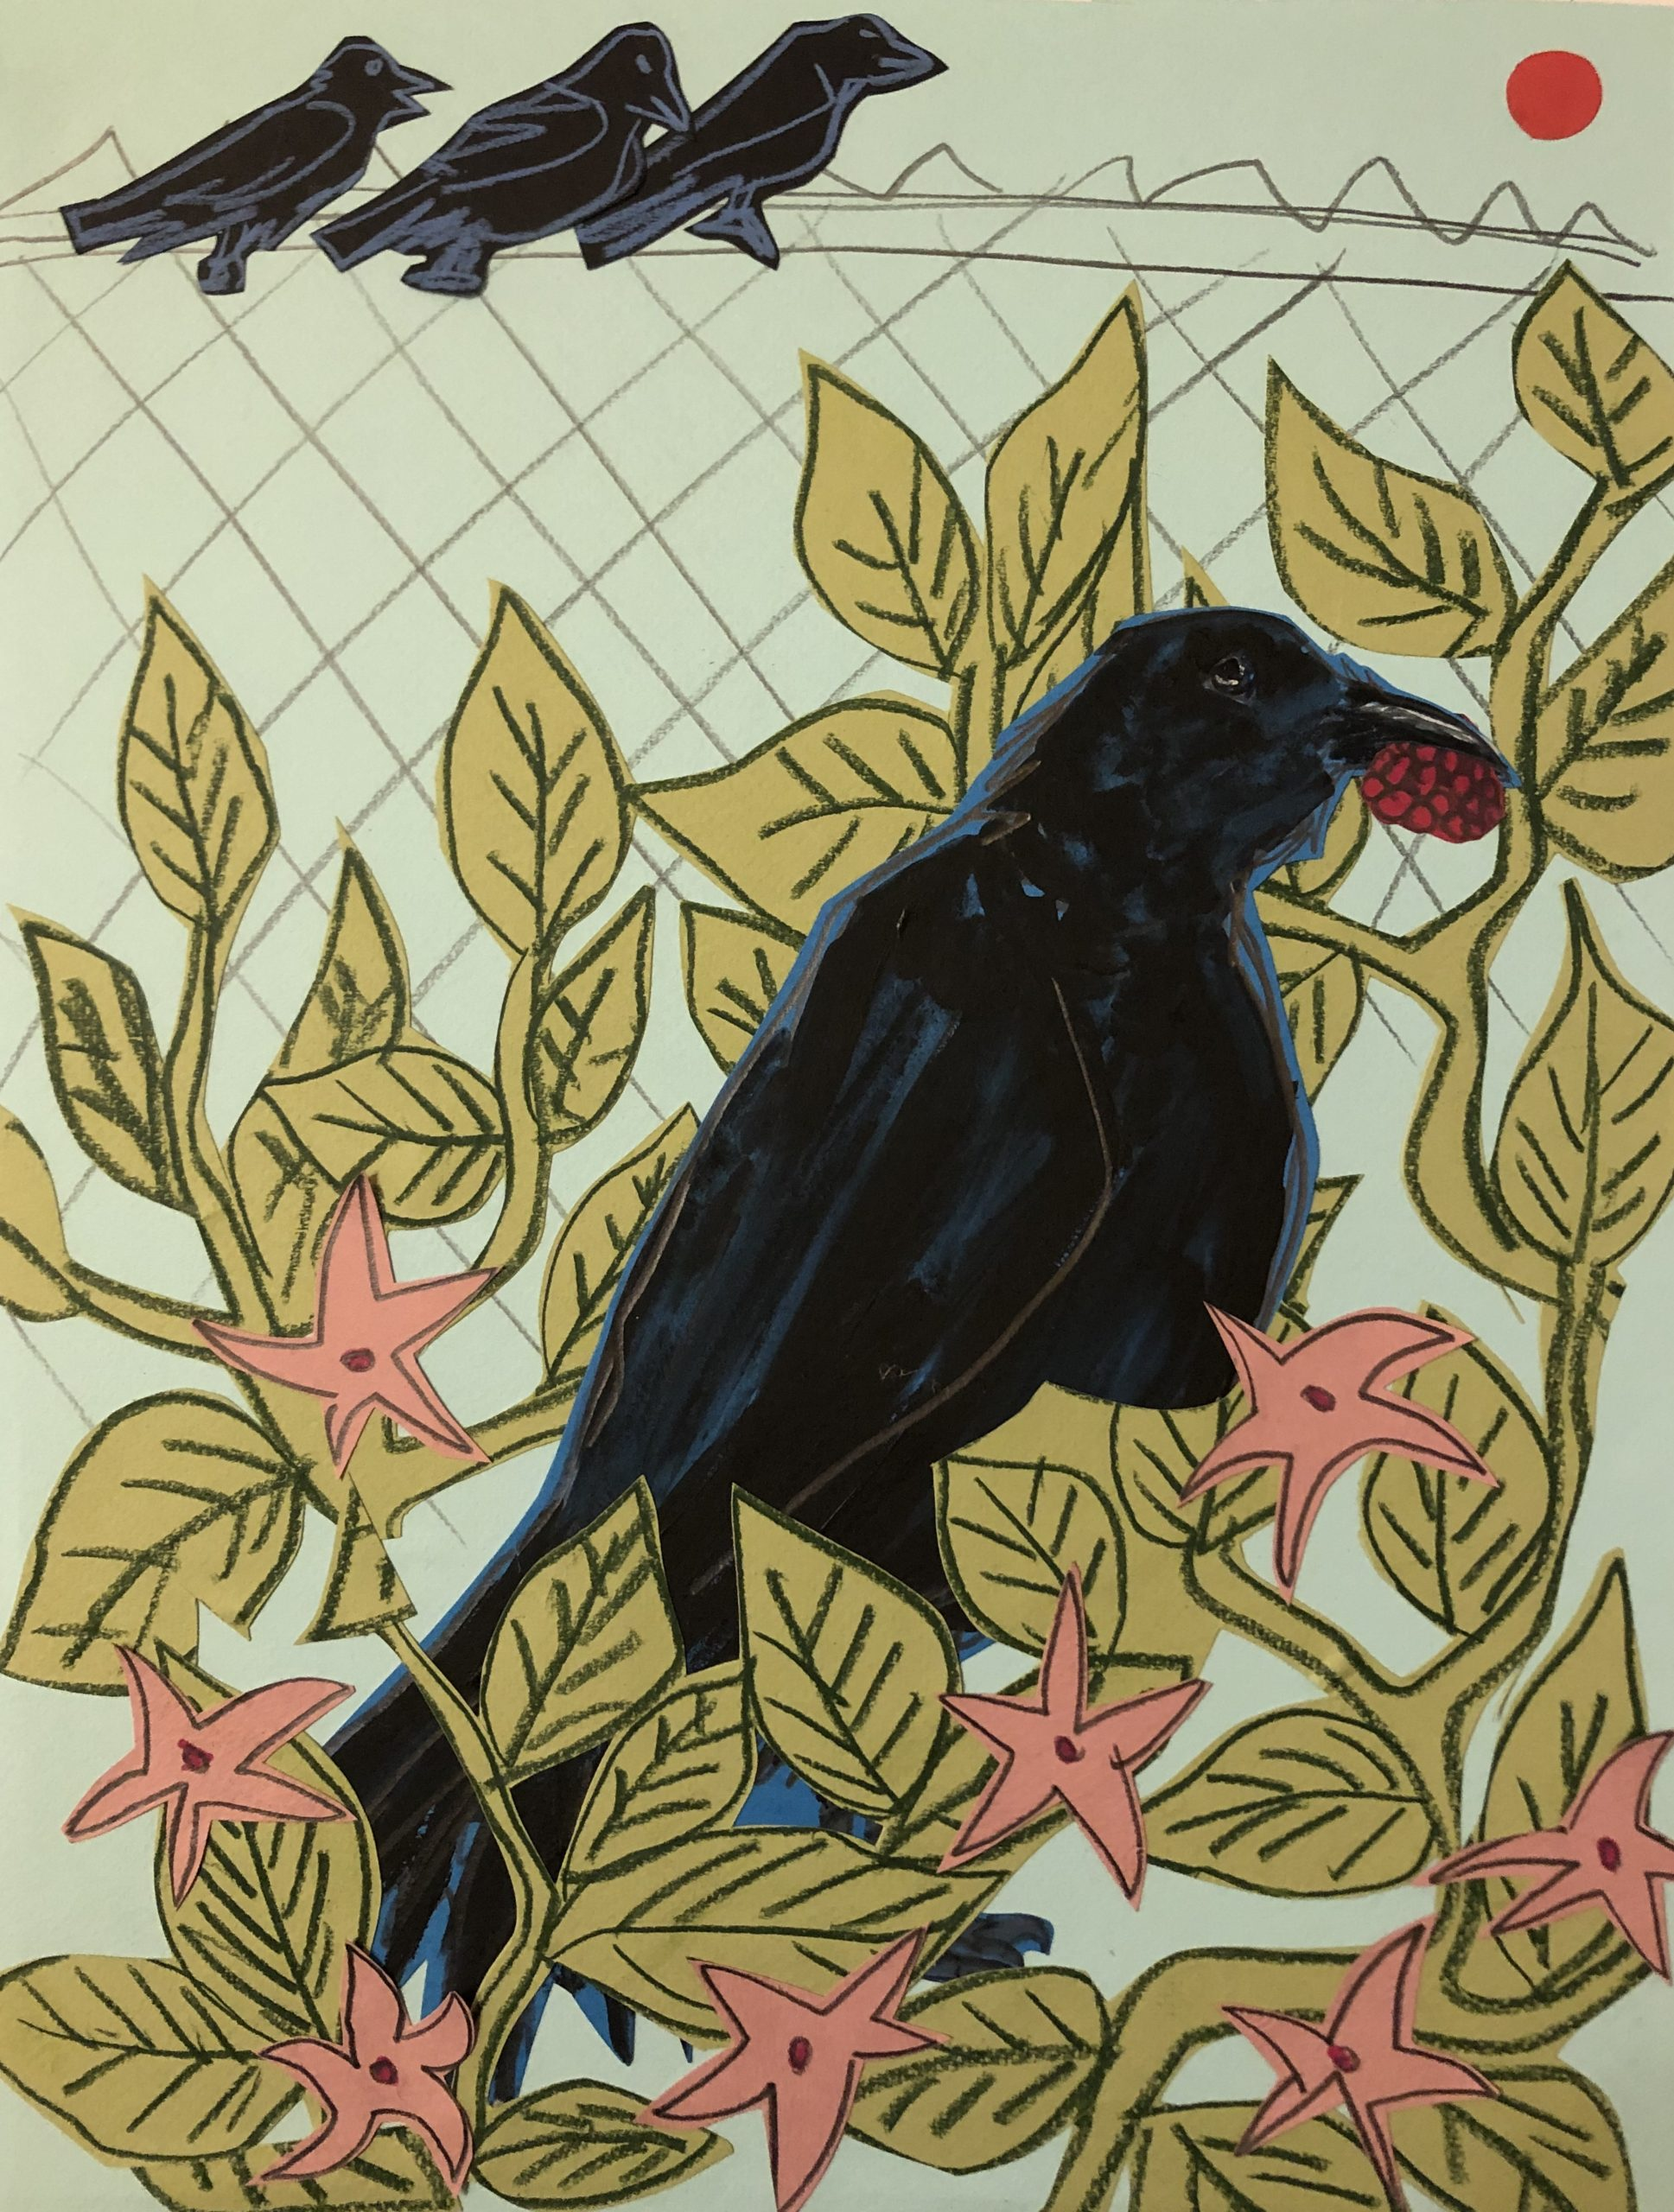 Sunde White illustrates her essay about a crow that like raspberries